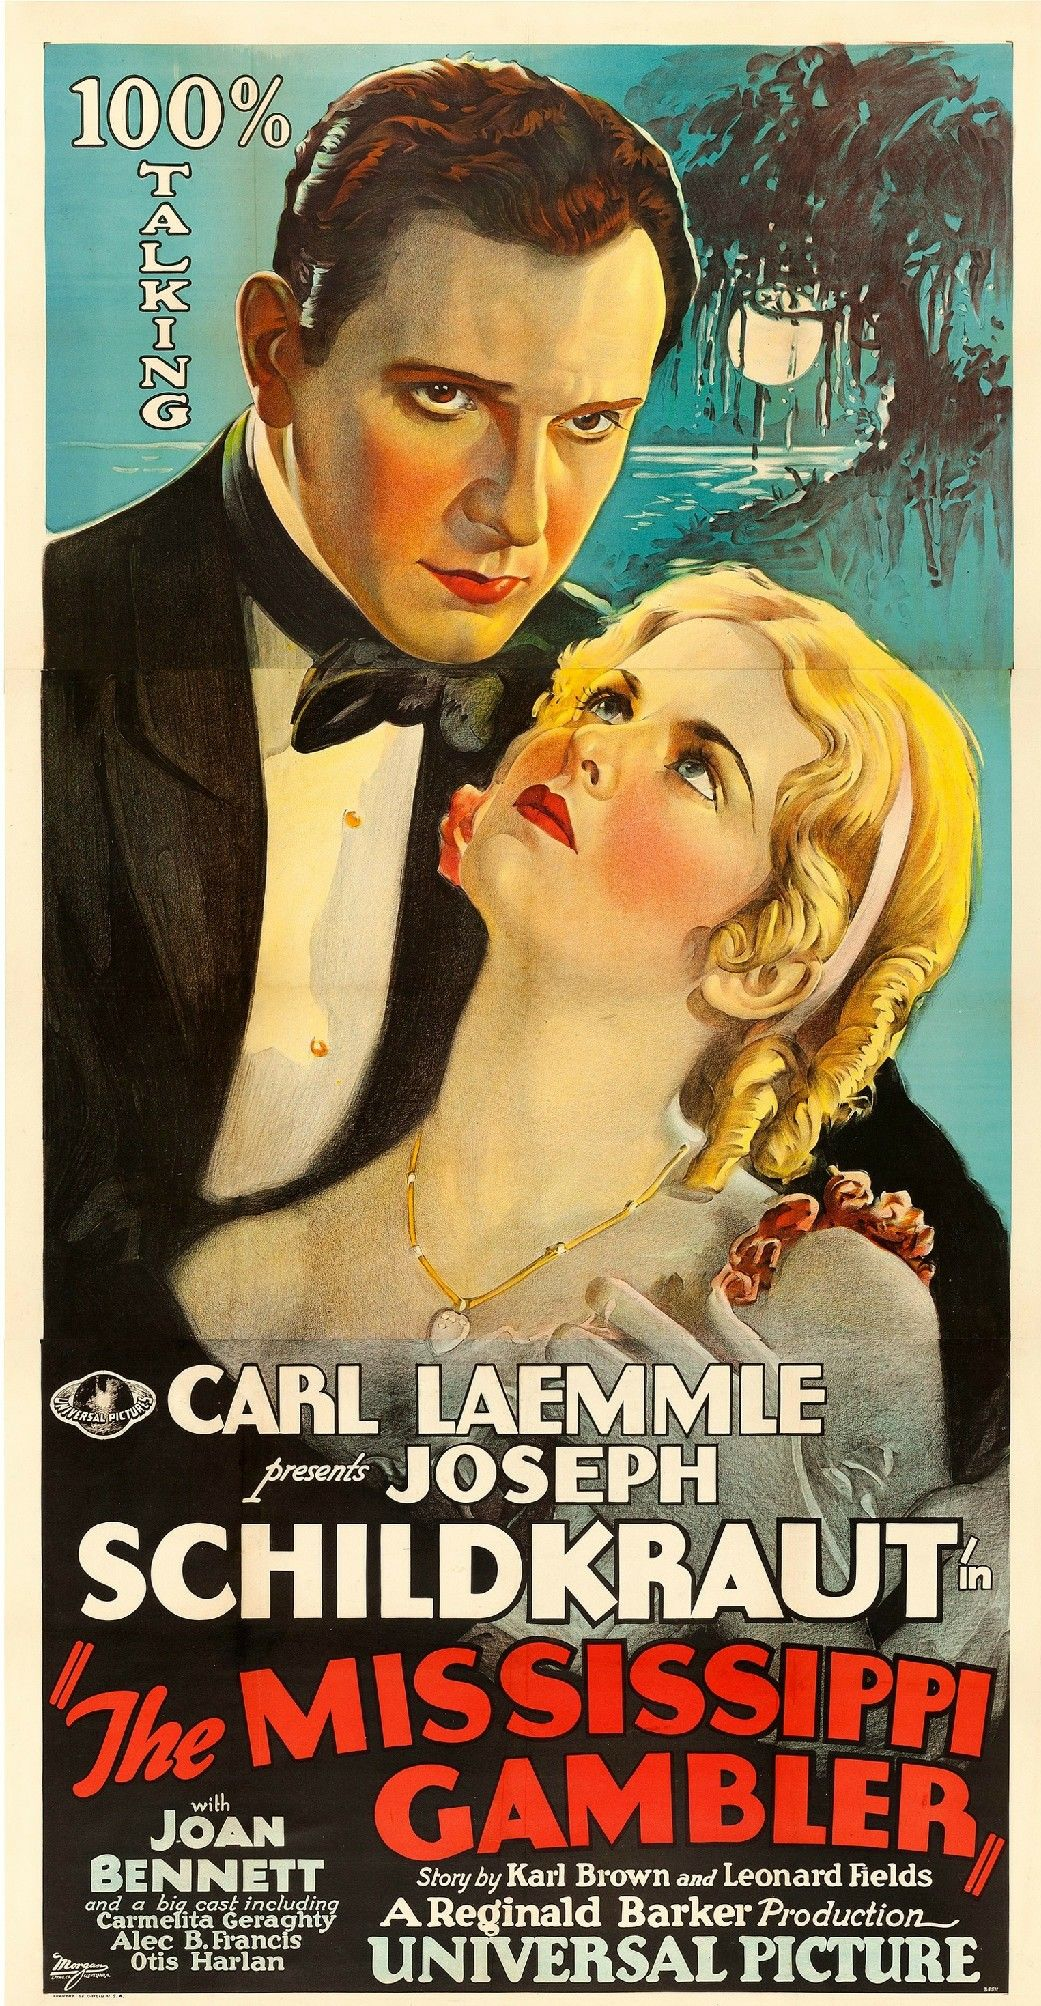 Pin by Ginger Pardieck on The Mississippi Gambler. Movie